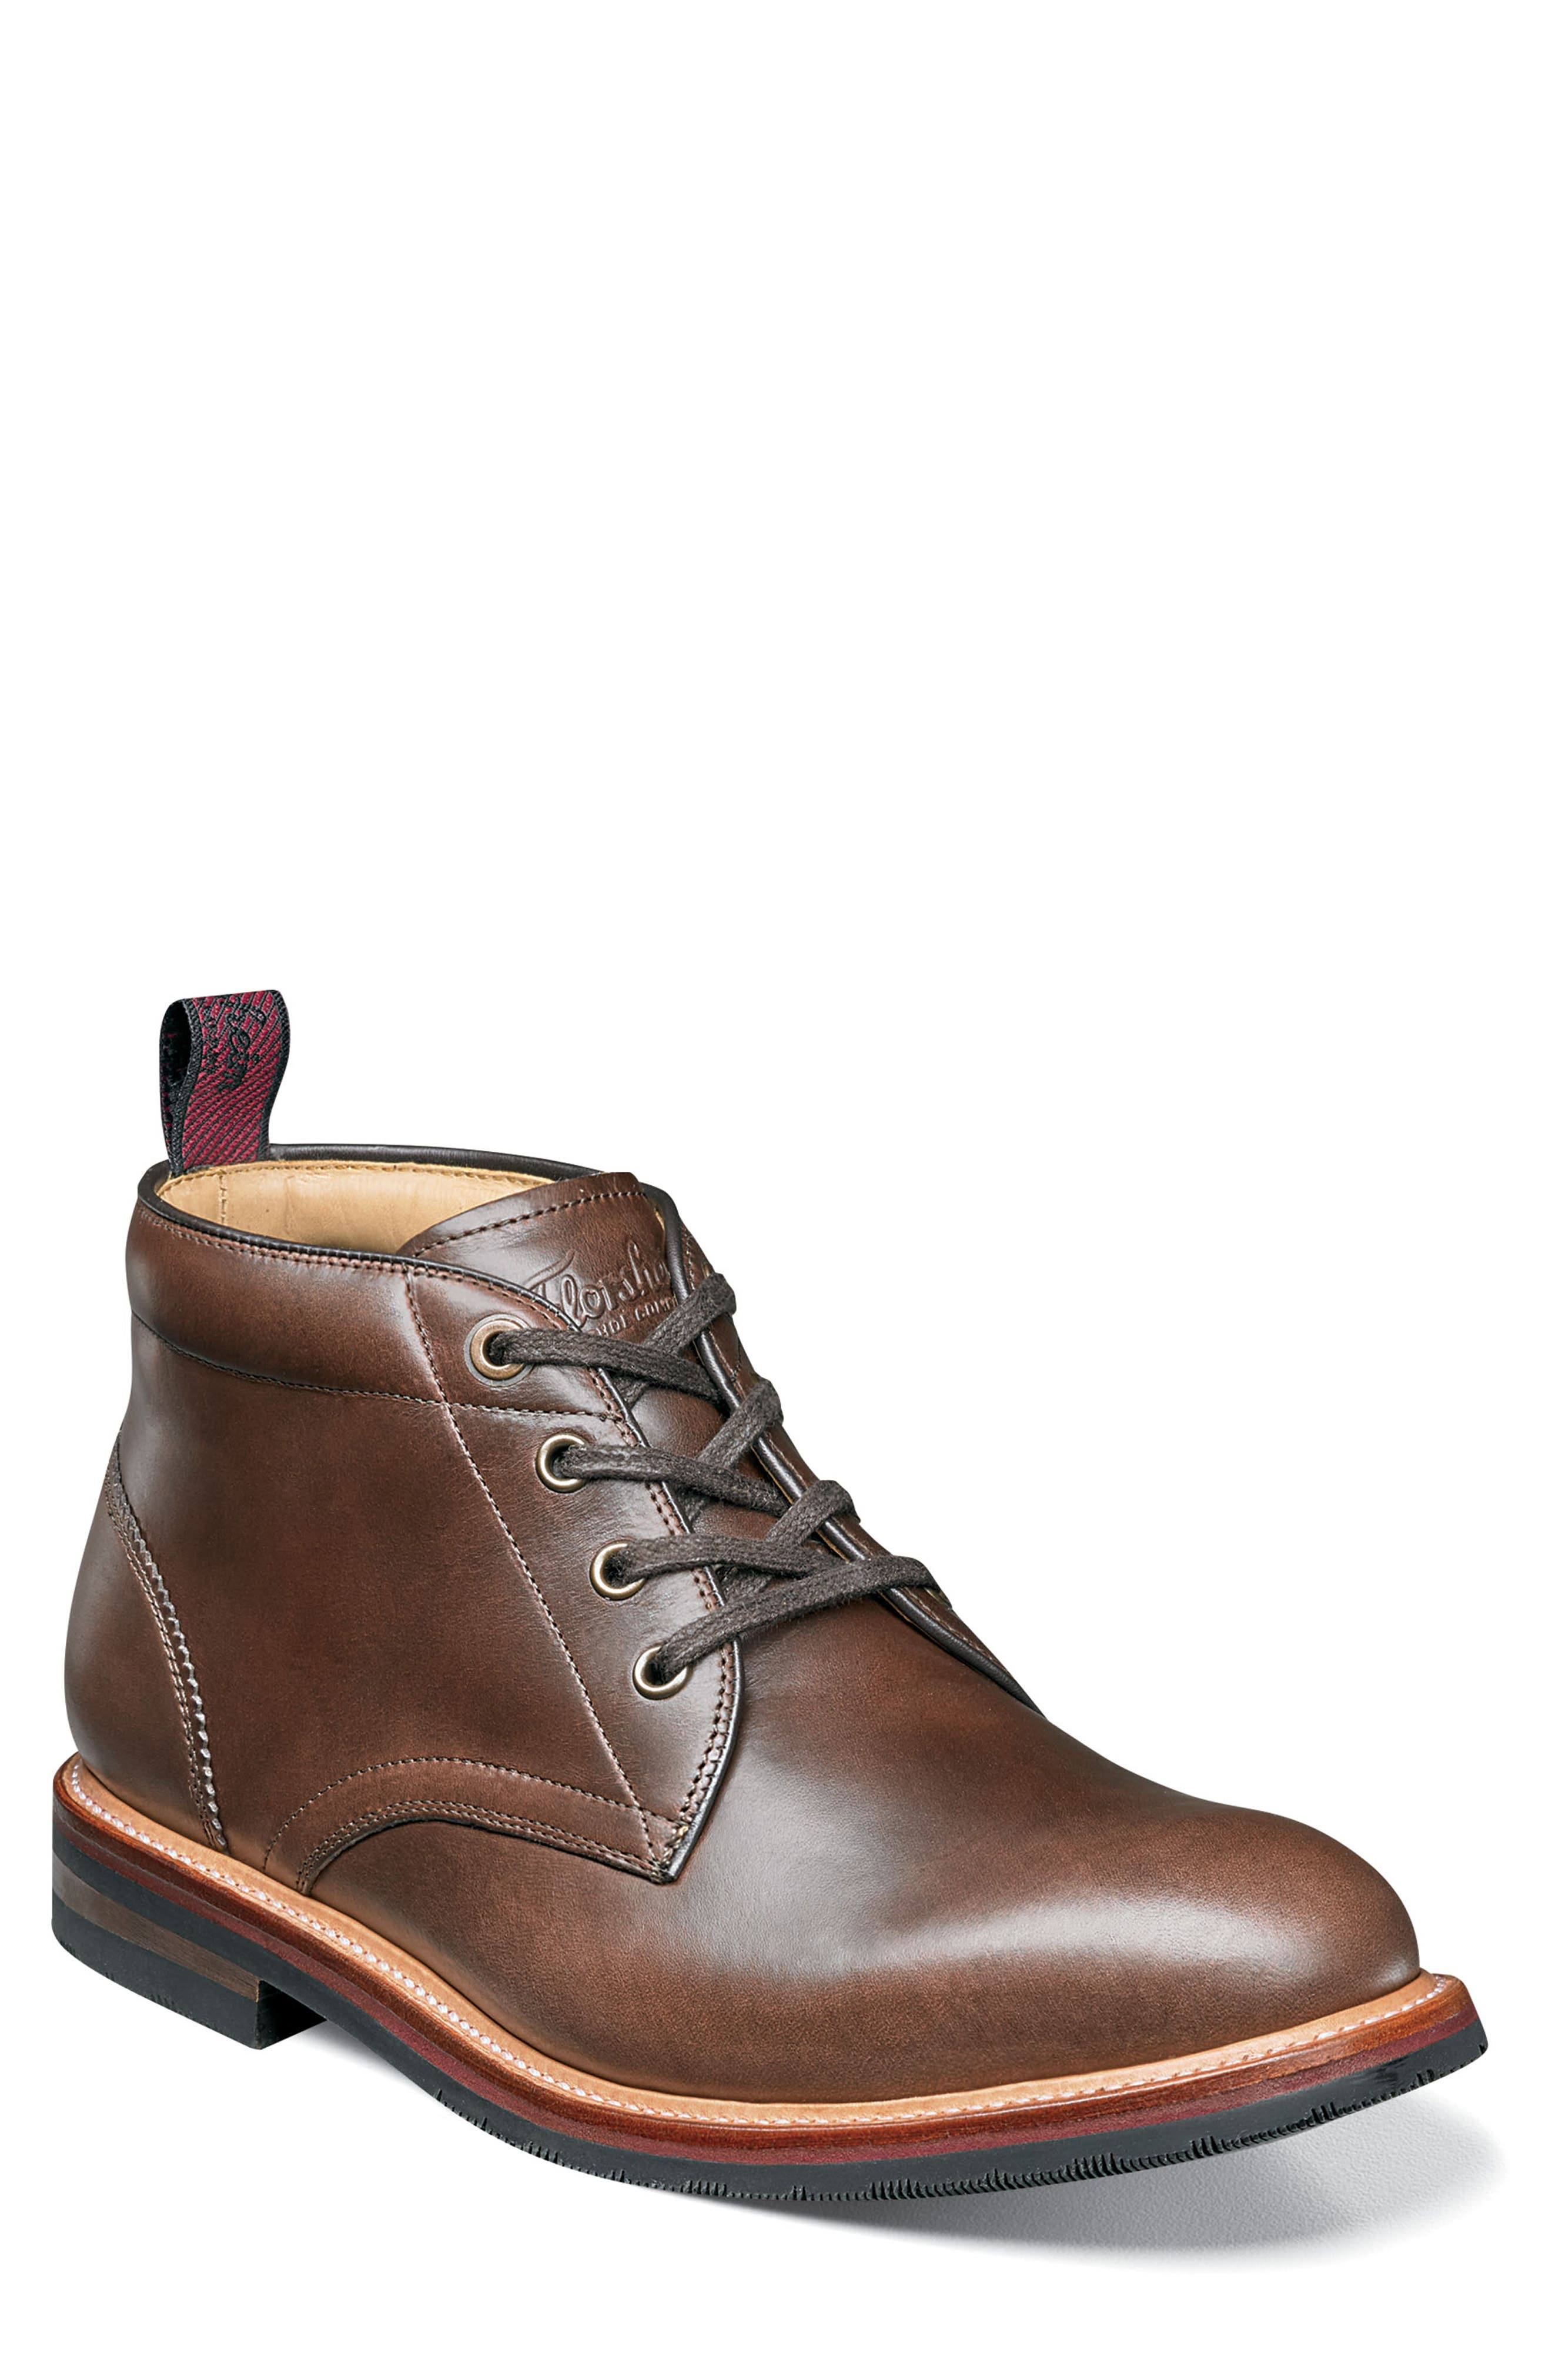 Florsheim Foundry Leather Boot - Brown